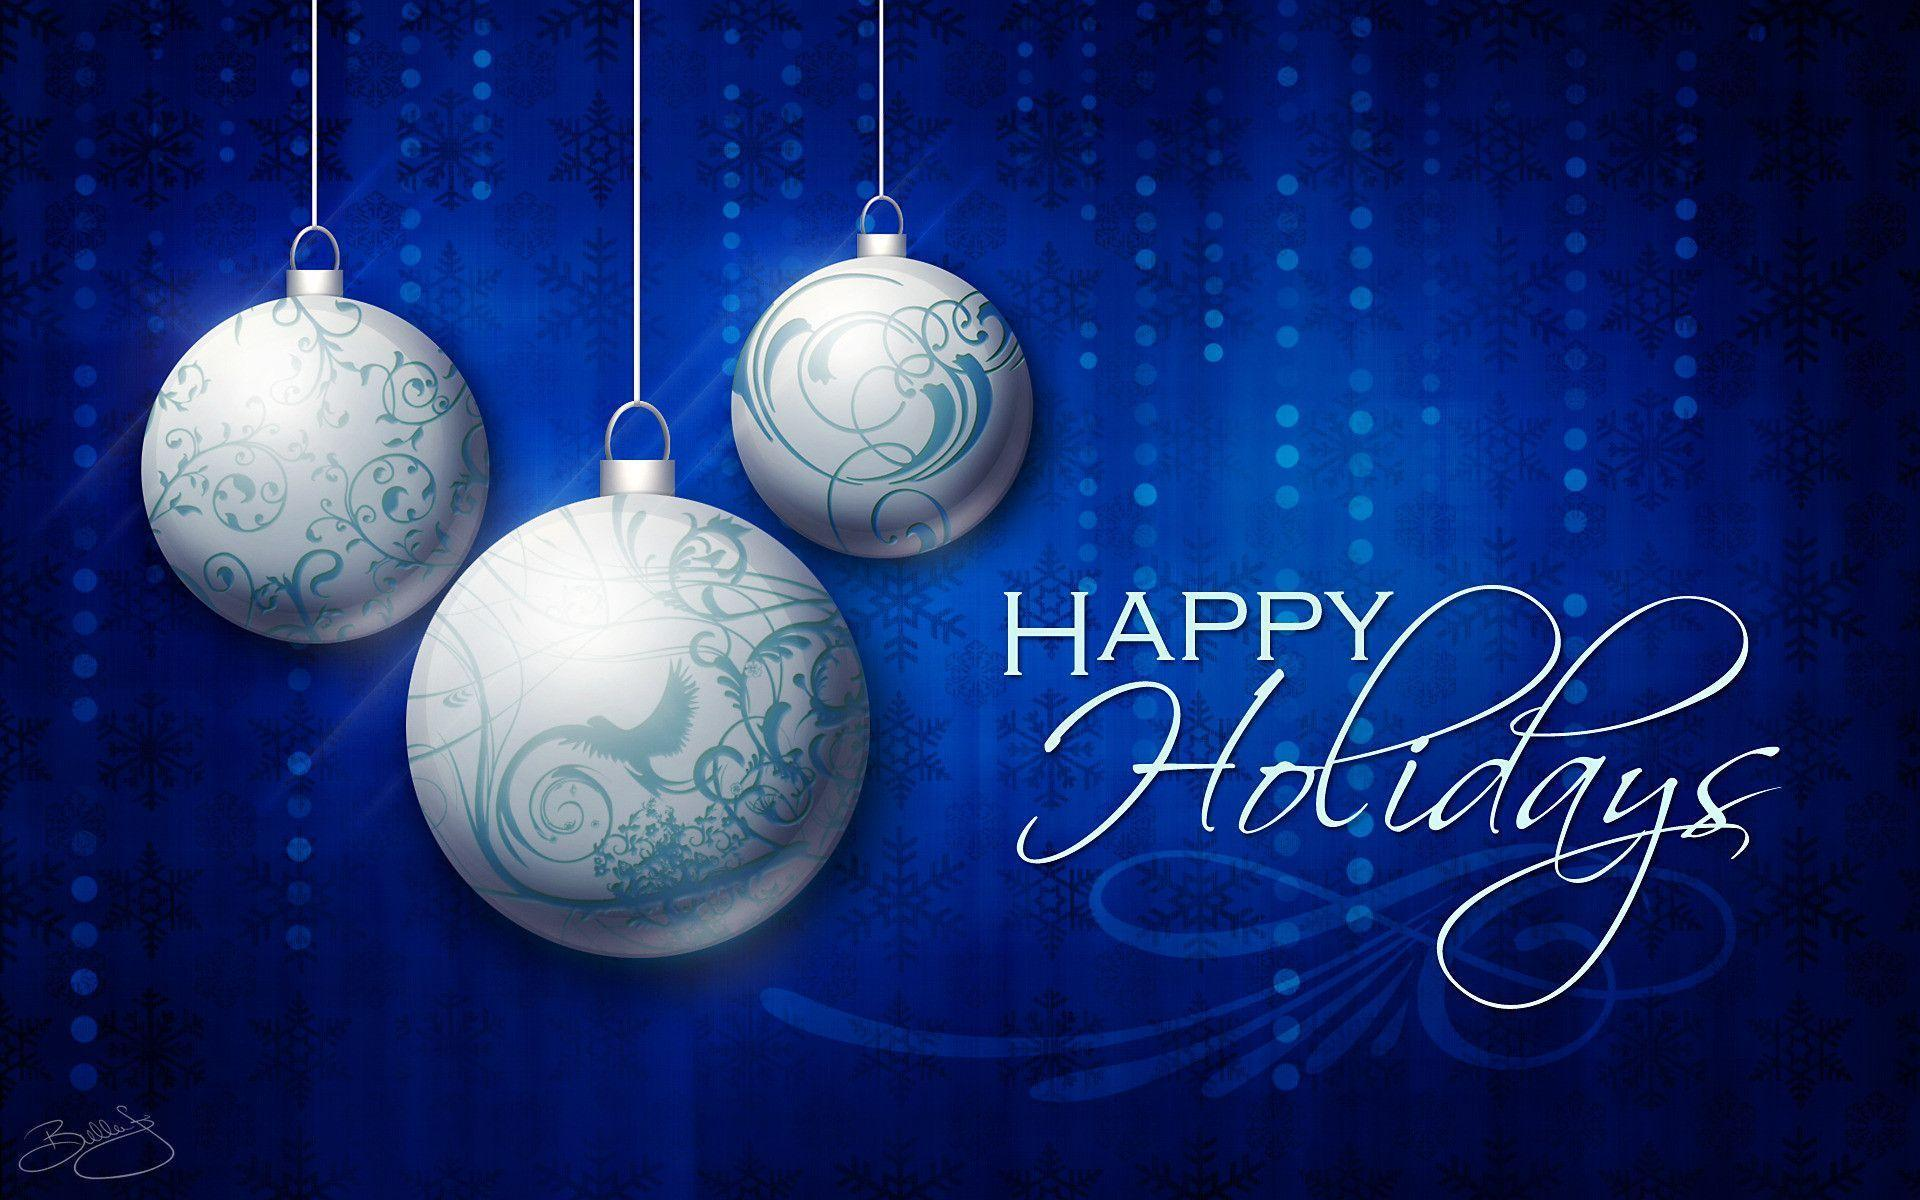 HD Holidays Wallpapers   Top HD Holidays Backgrounds 1920x1200